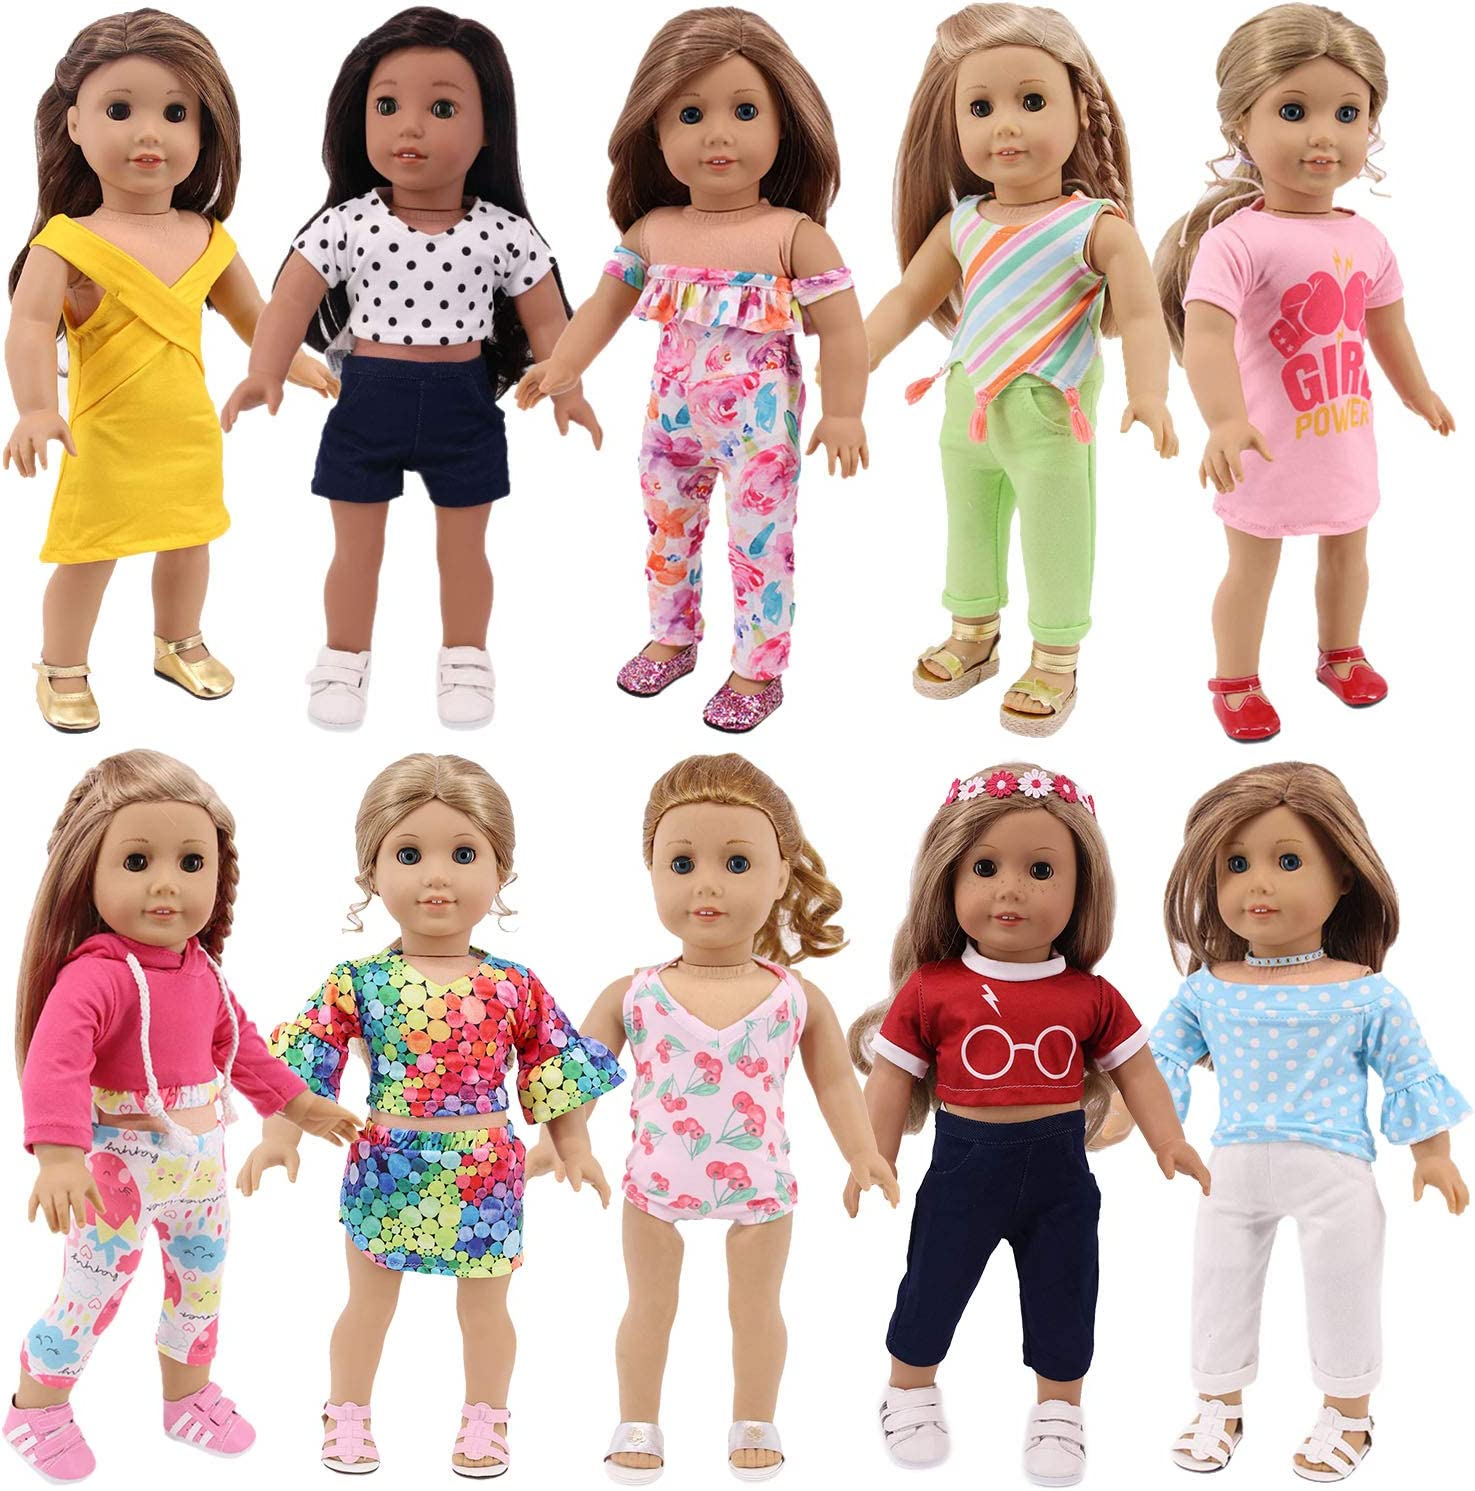 ZWSISU At the price 10 Sets of Elegant Girl Doll Clothing Dresses Clothes Outfits Fit